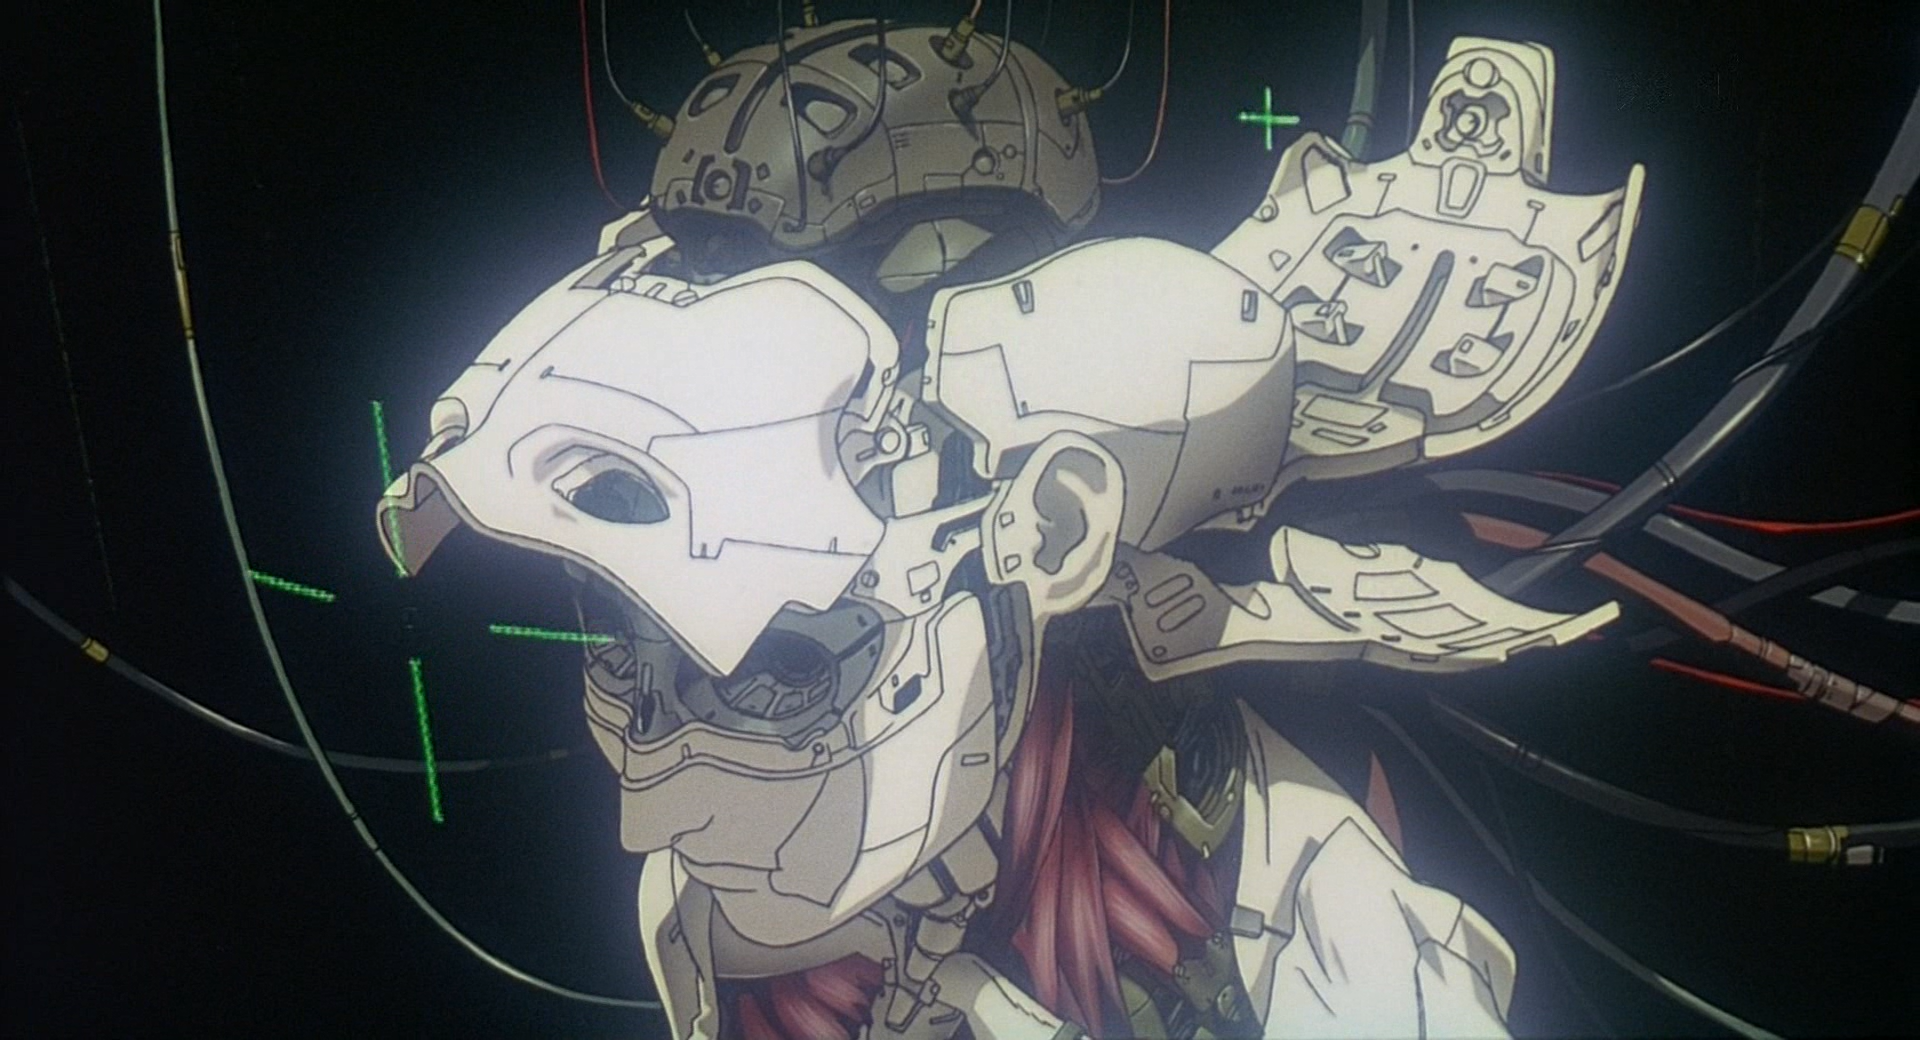 The Ghost In Shell Opening Sequence Is Just Like One From Anime